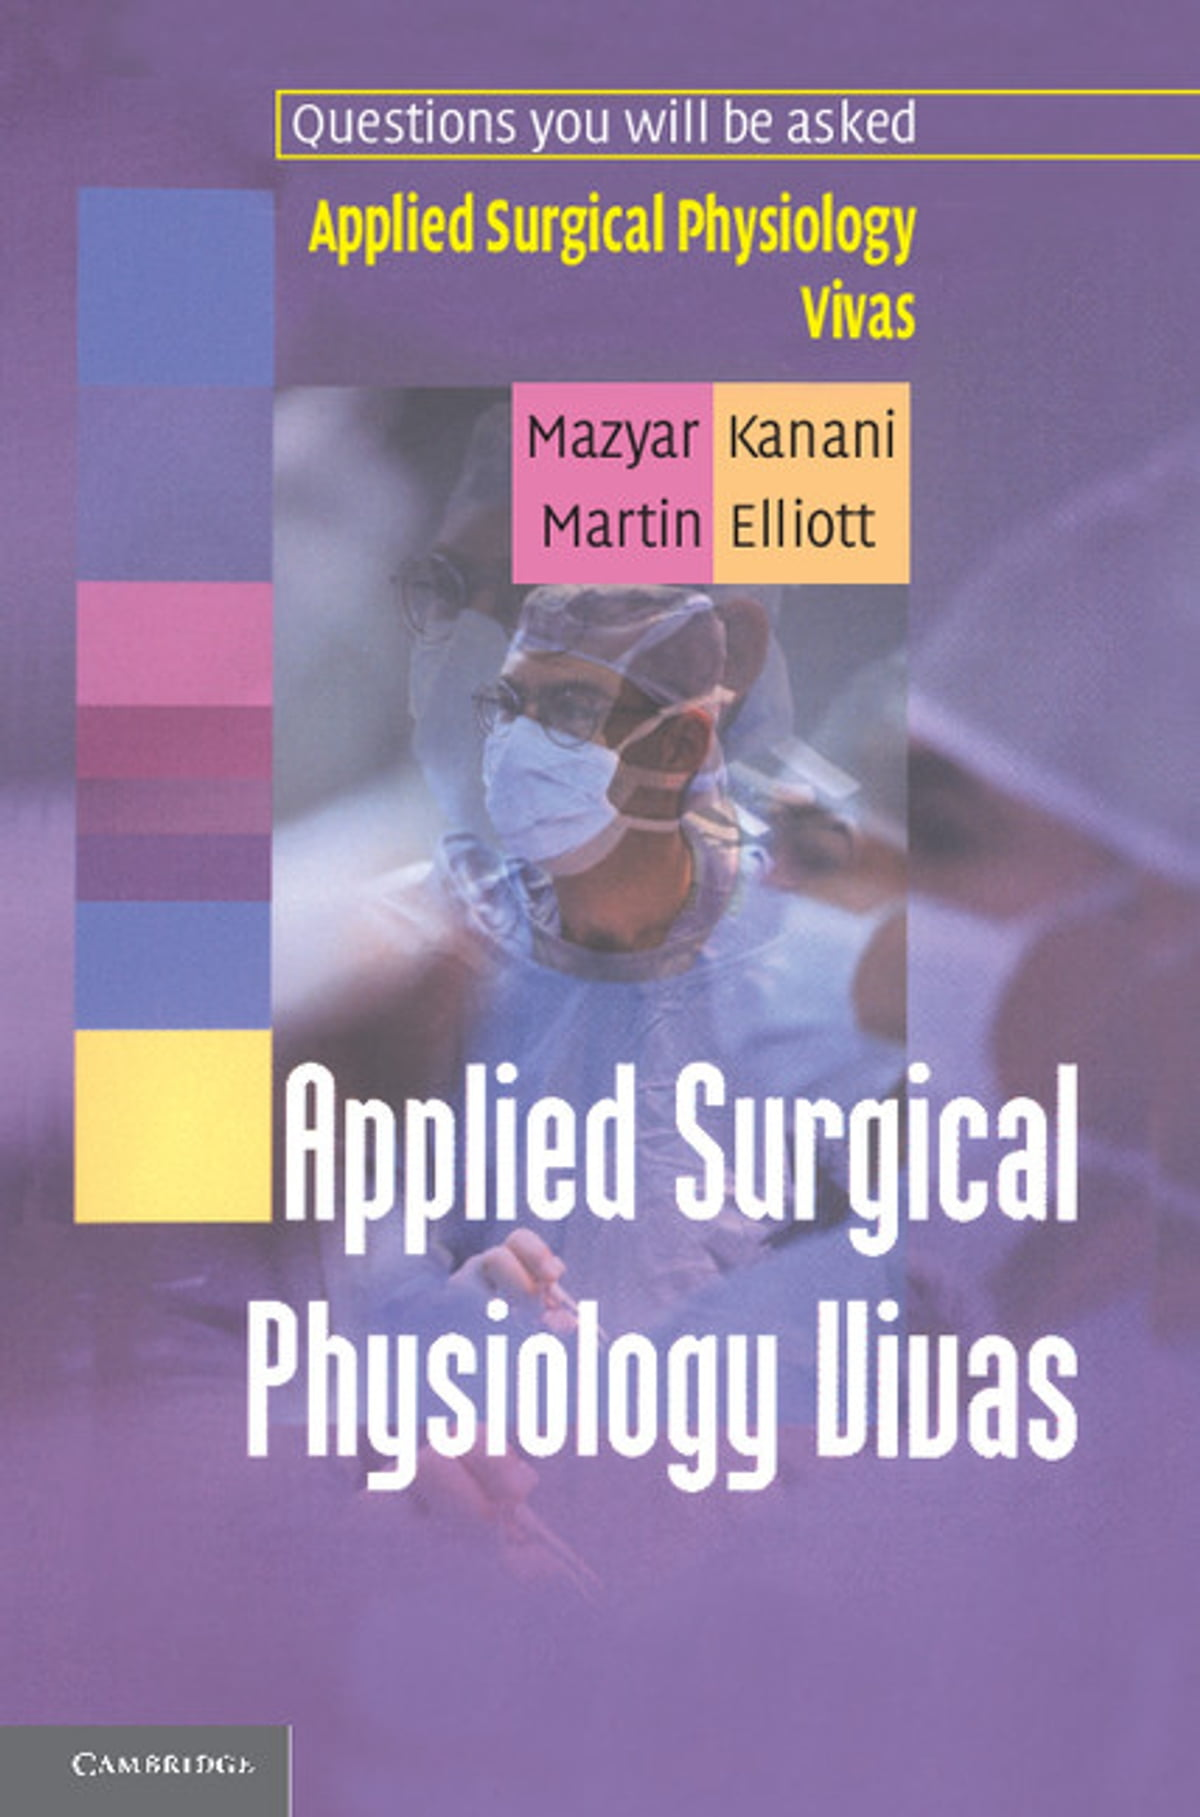 Applied Surgical Physiology Vivas eBook by Mazyar Kanani - 9781139930727 |  Rakuten Kobo